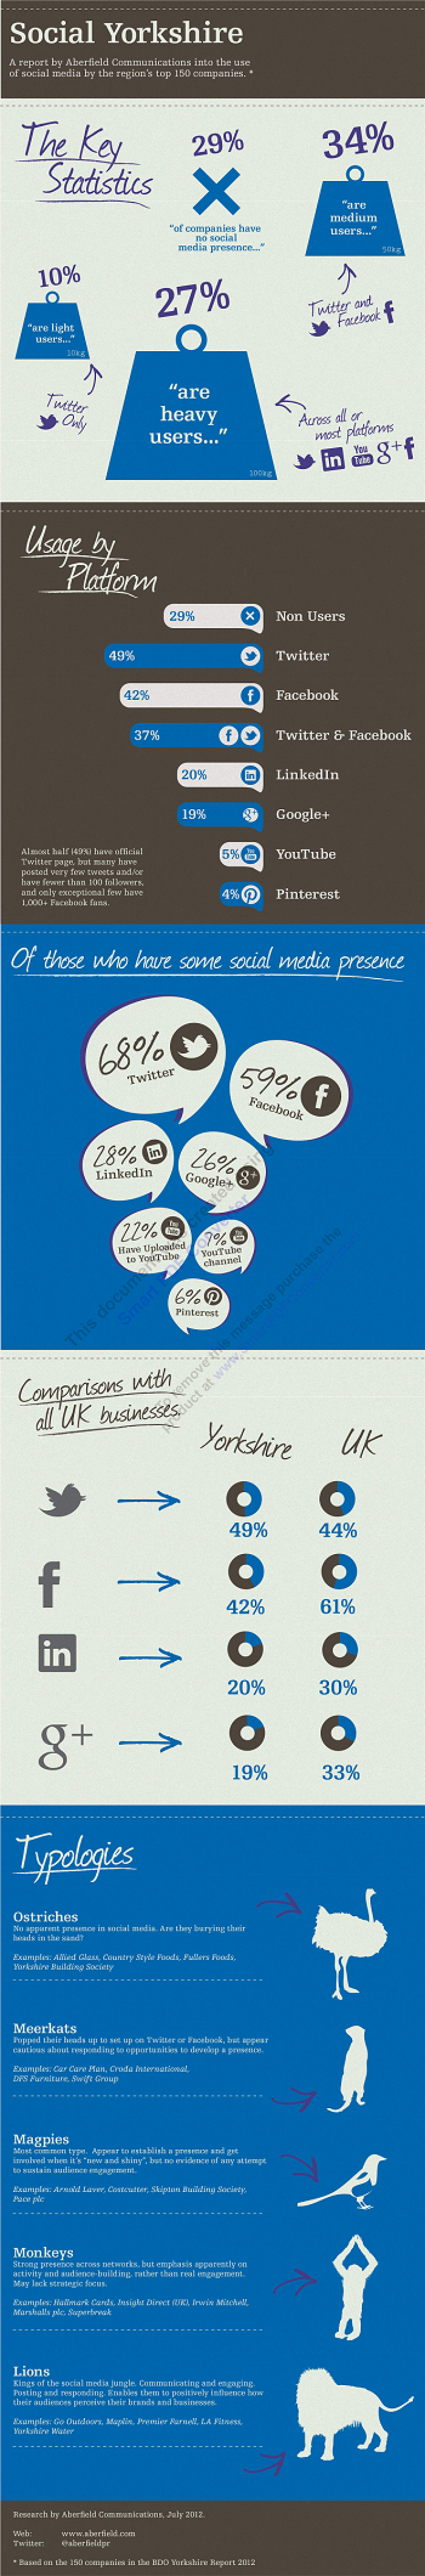 Social Yorkshire 2012 Infographic